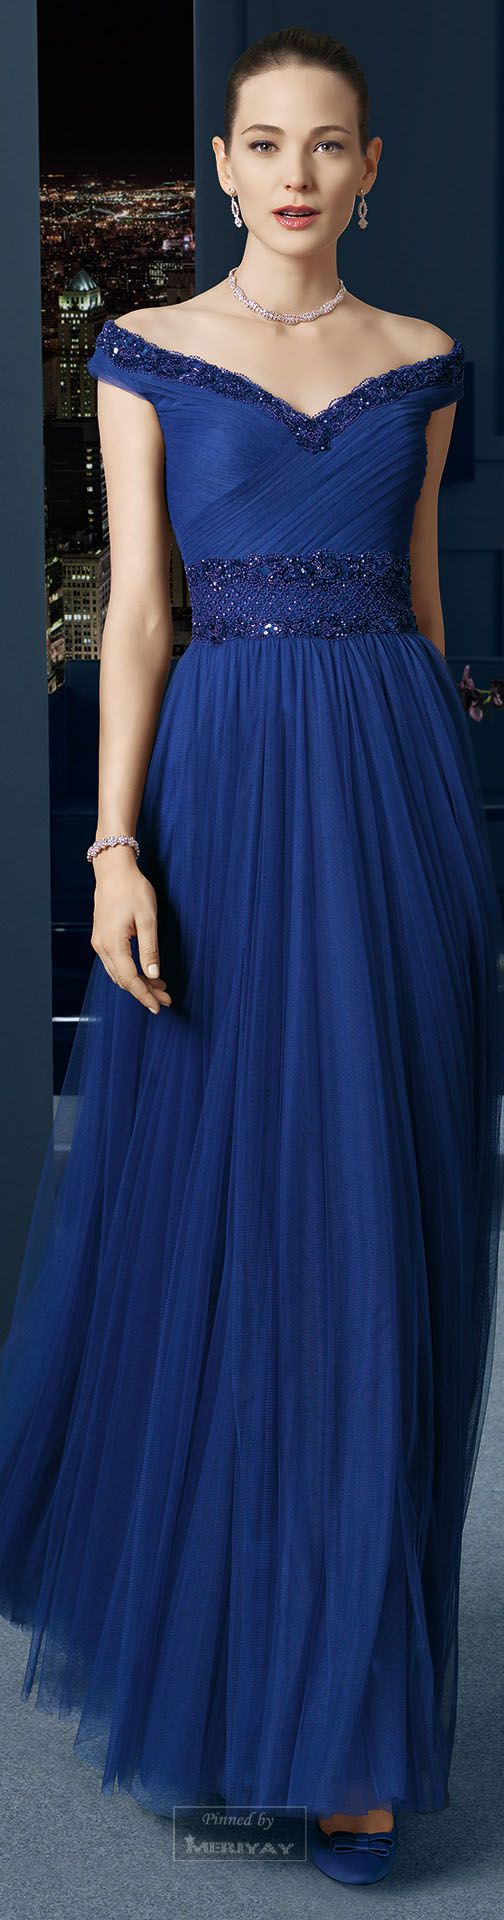 Okay yes it is just a dress I get this but it happens to be a TARDIS blue dress called the Rosa Clara. So yeah. I'mma pin it.